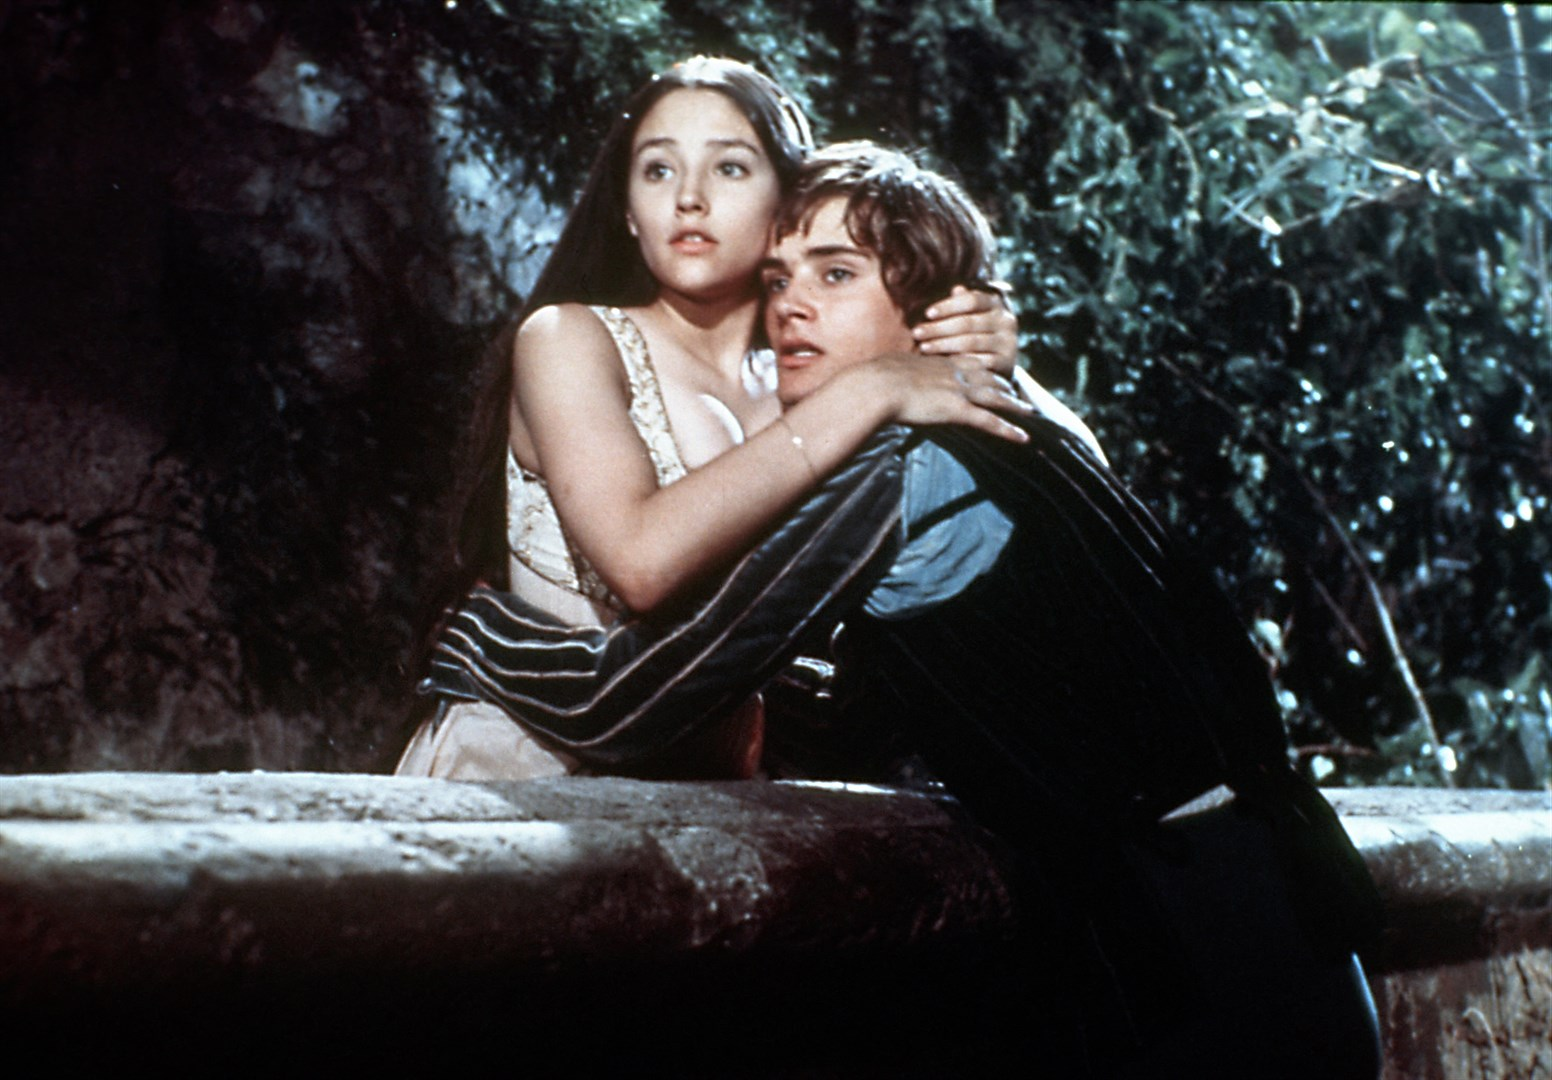 Romeo and Juliet [Source: Microsoft]